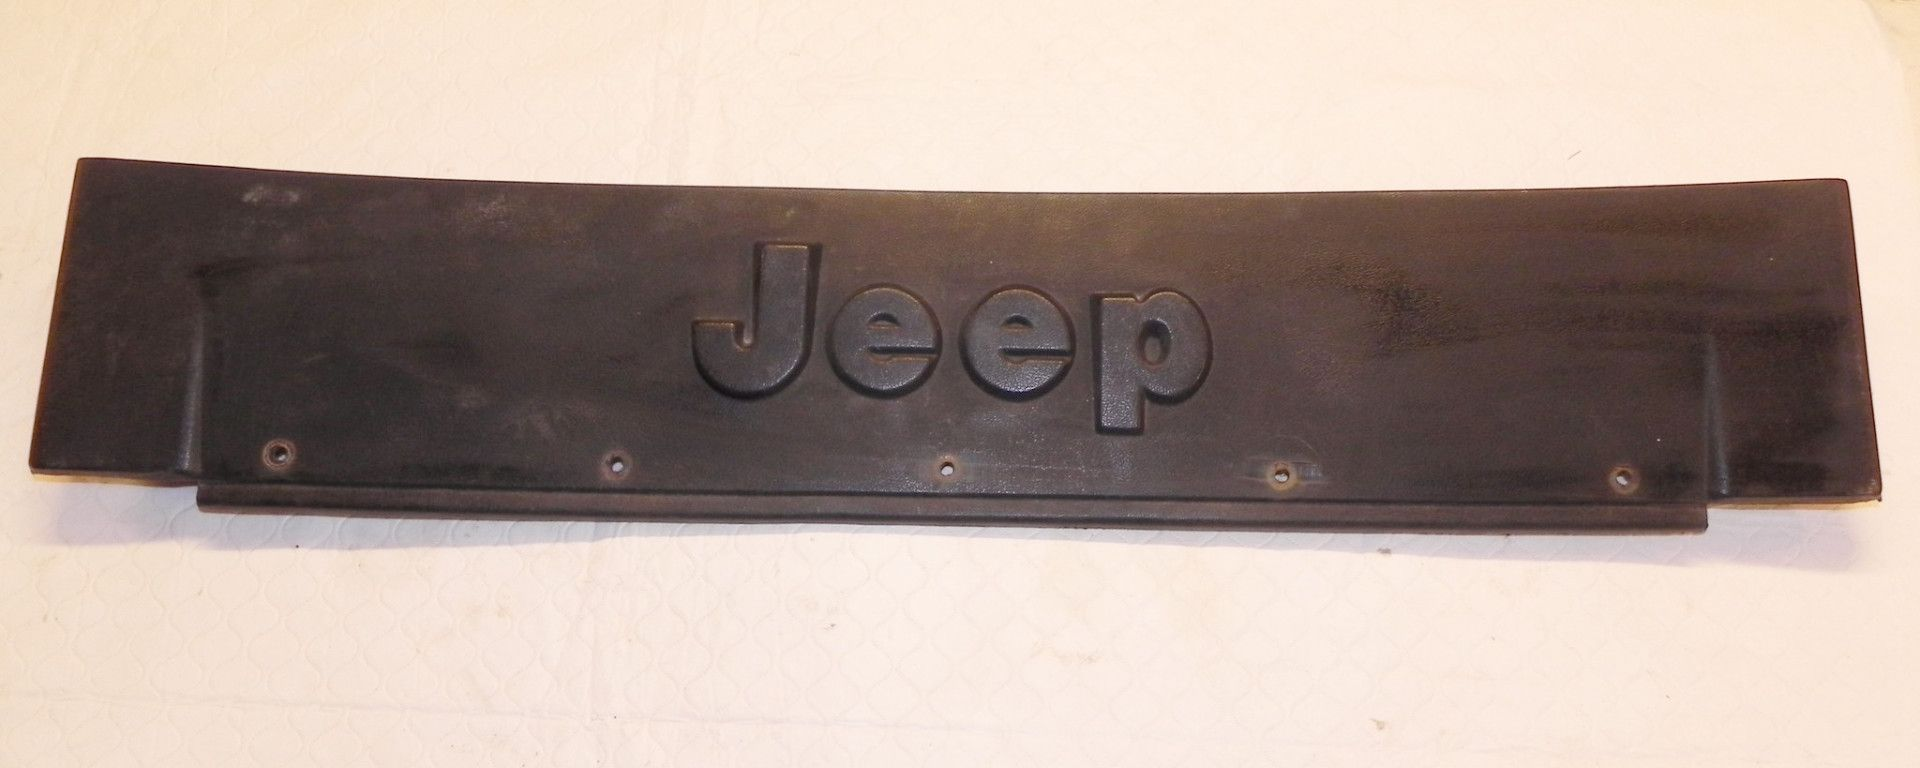 Jeep Wrangler YJ Front Frame Bumper Trim Cover 87-95 OEM   Products ...